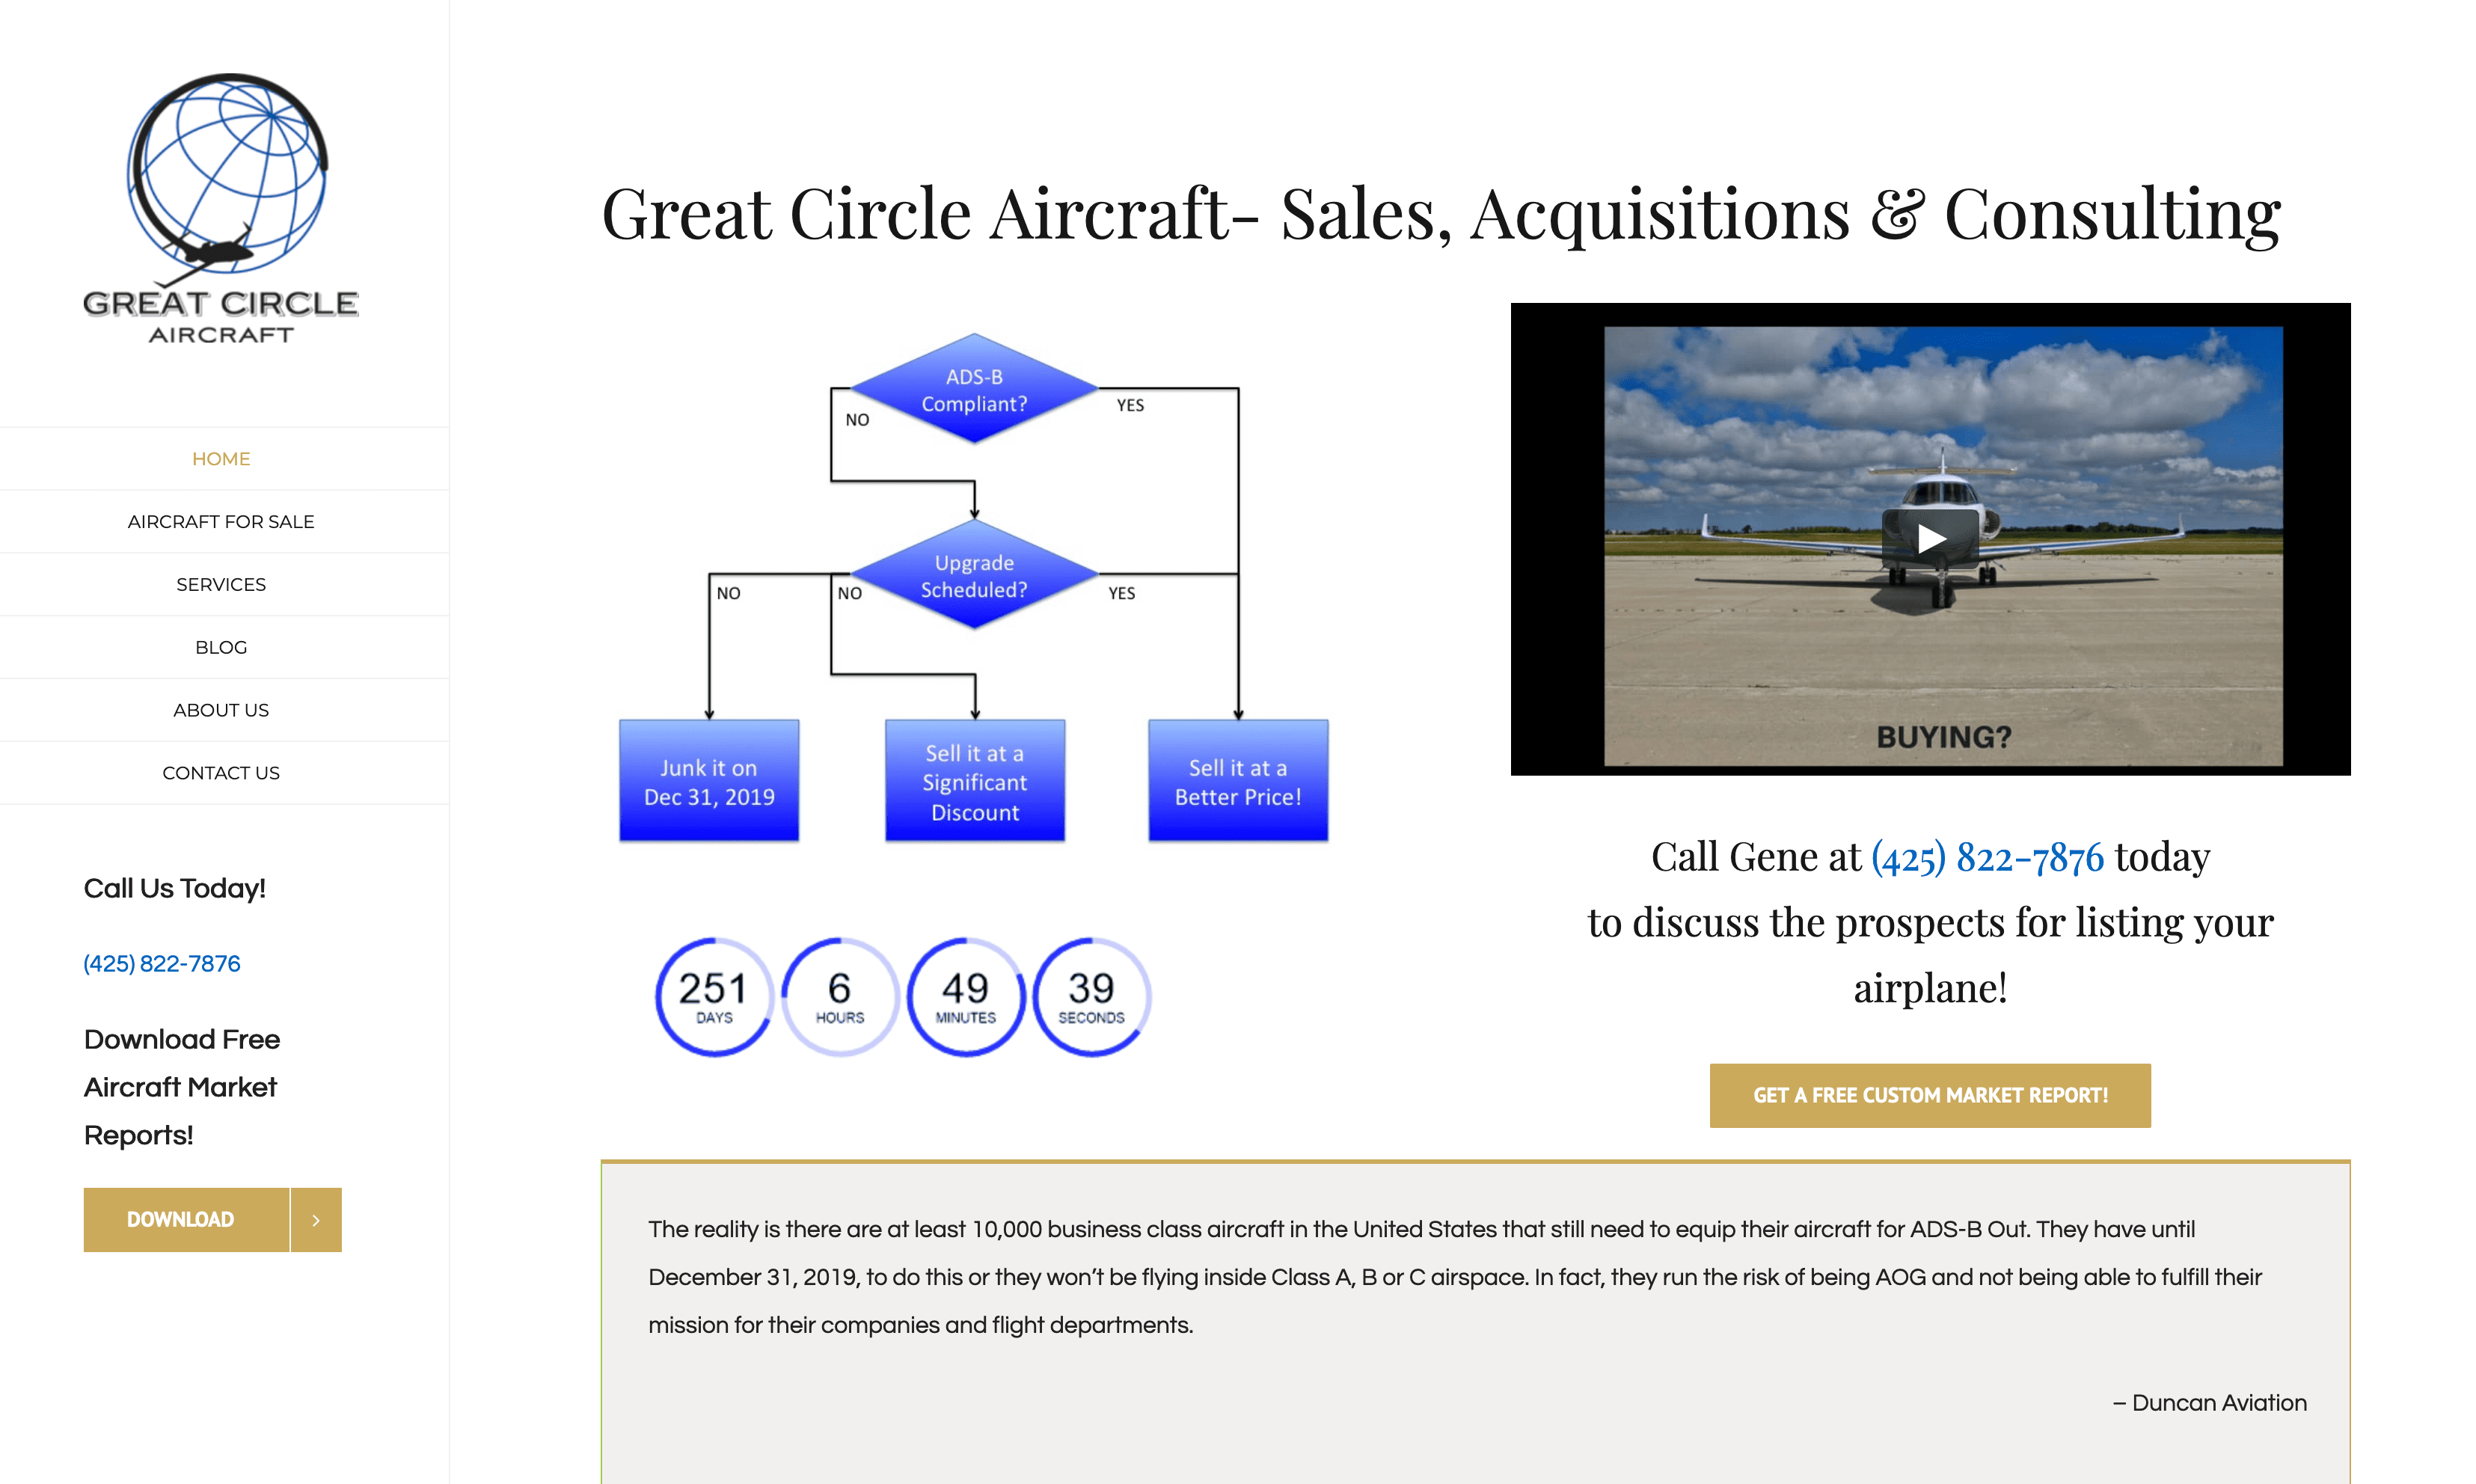 Aviation Web Site for Great Circle Aircraft Brokerage